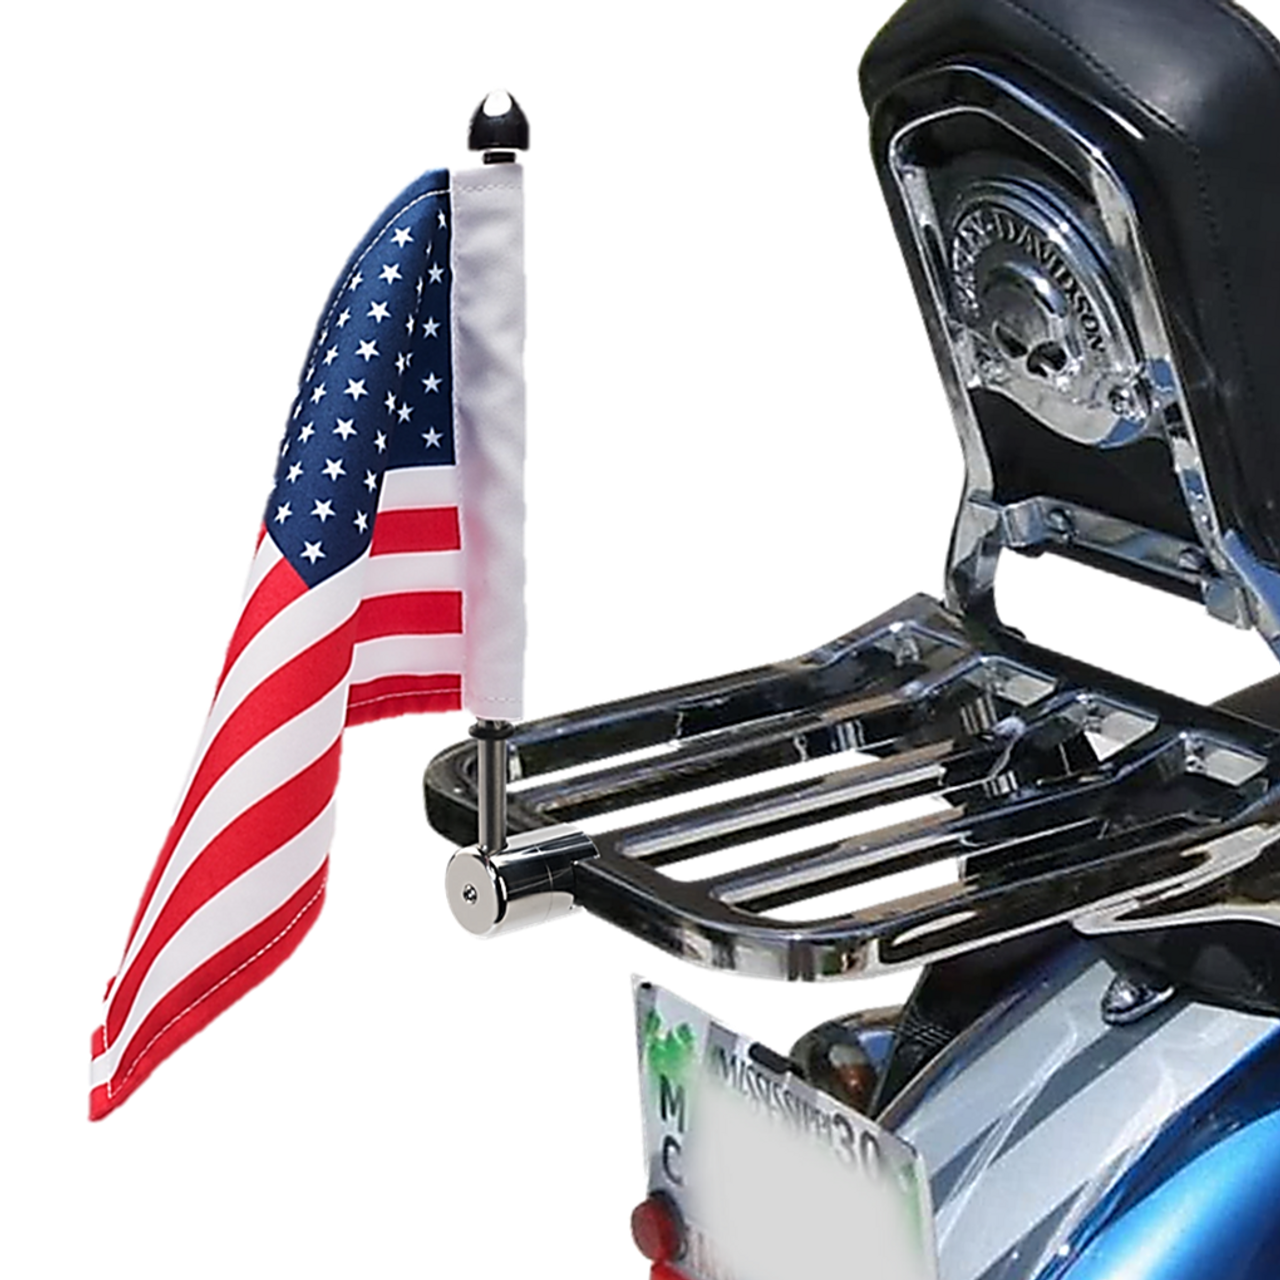 #RFM-SQ with 6x9 USA highway flag mounted on Harley square sport rack (rack not included)